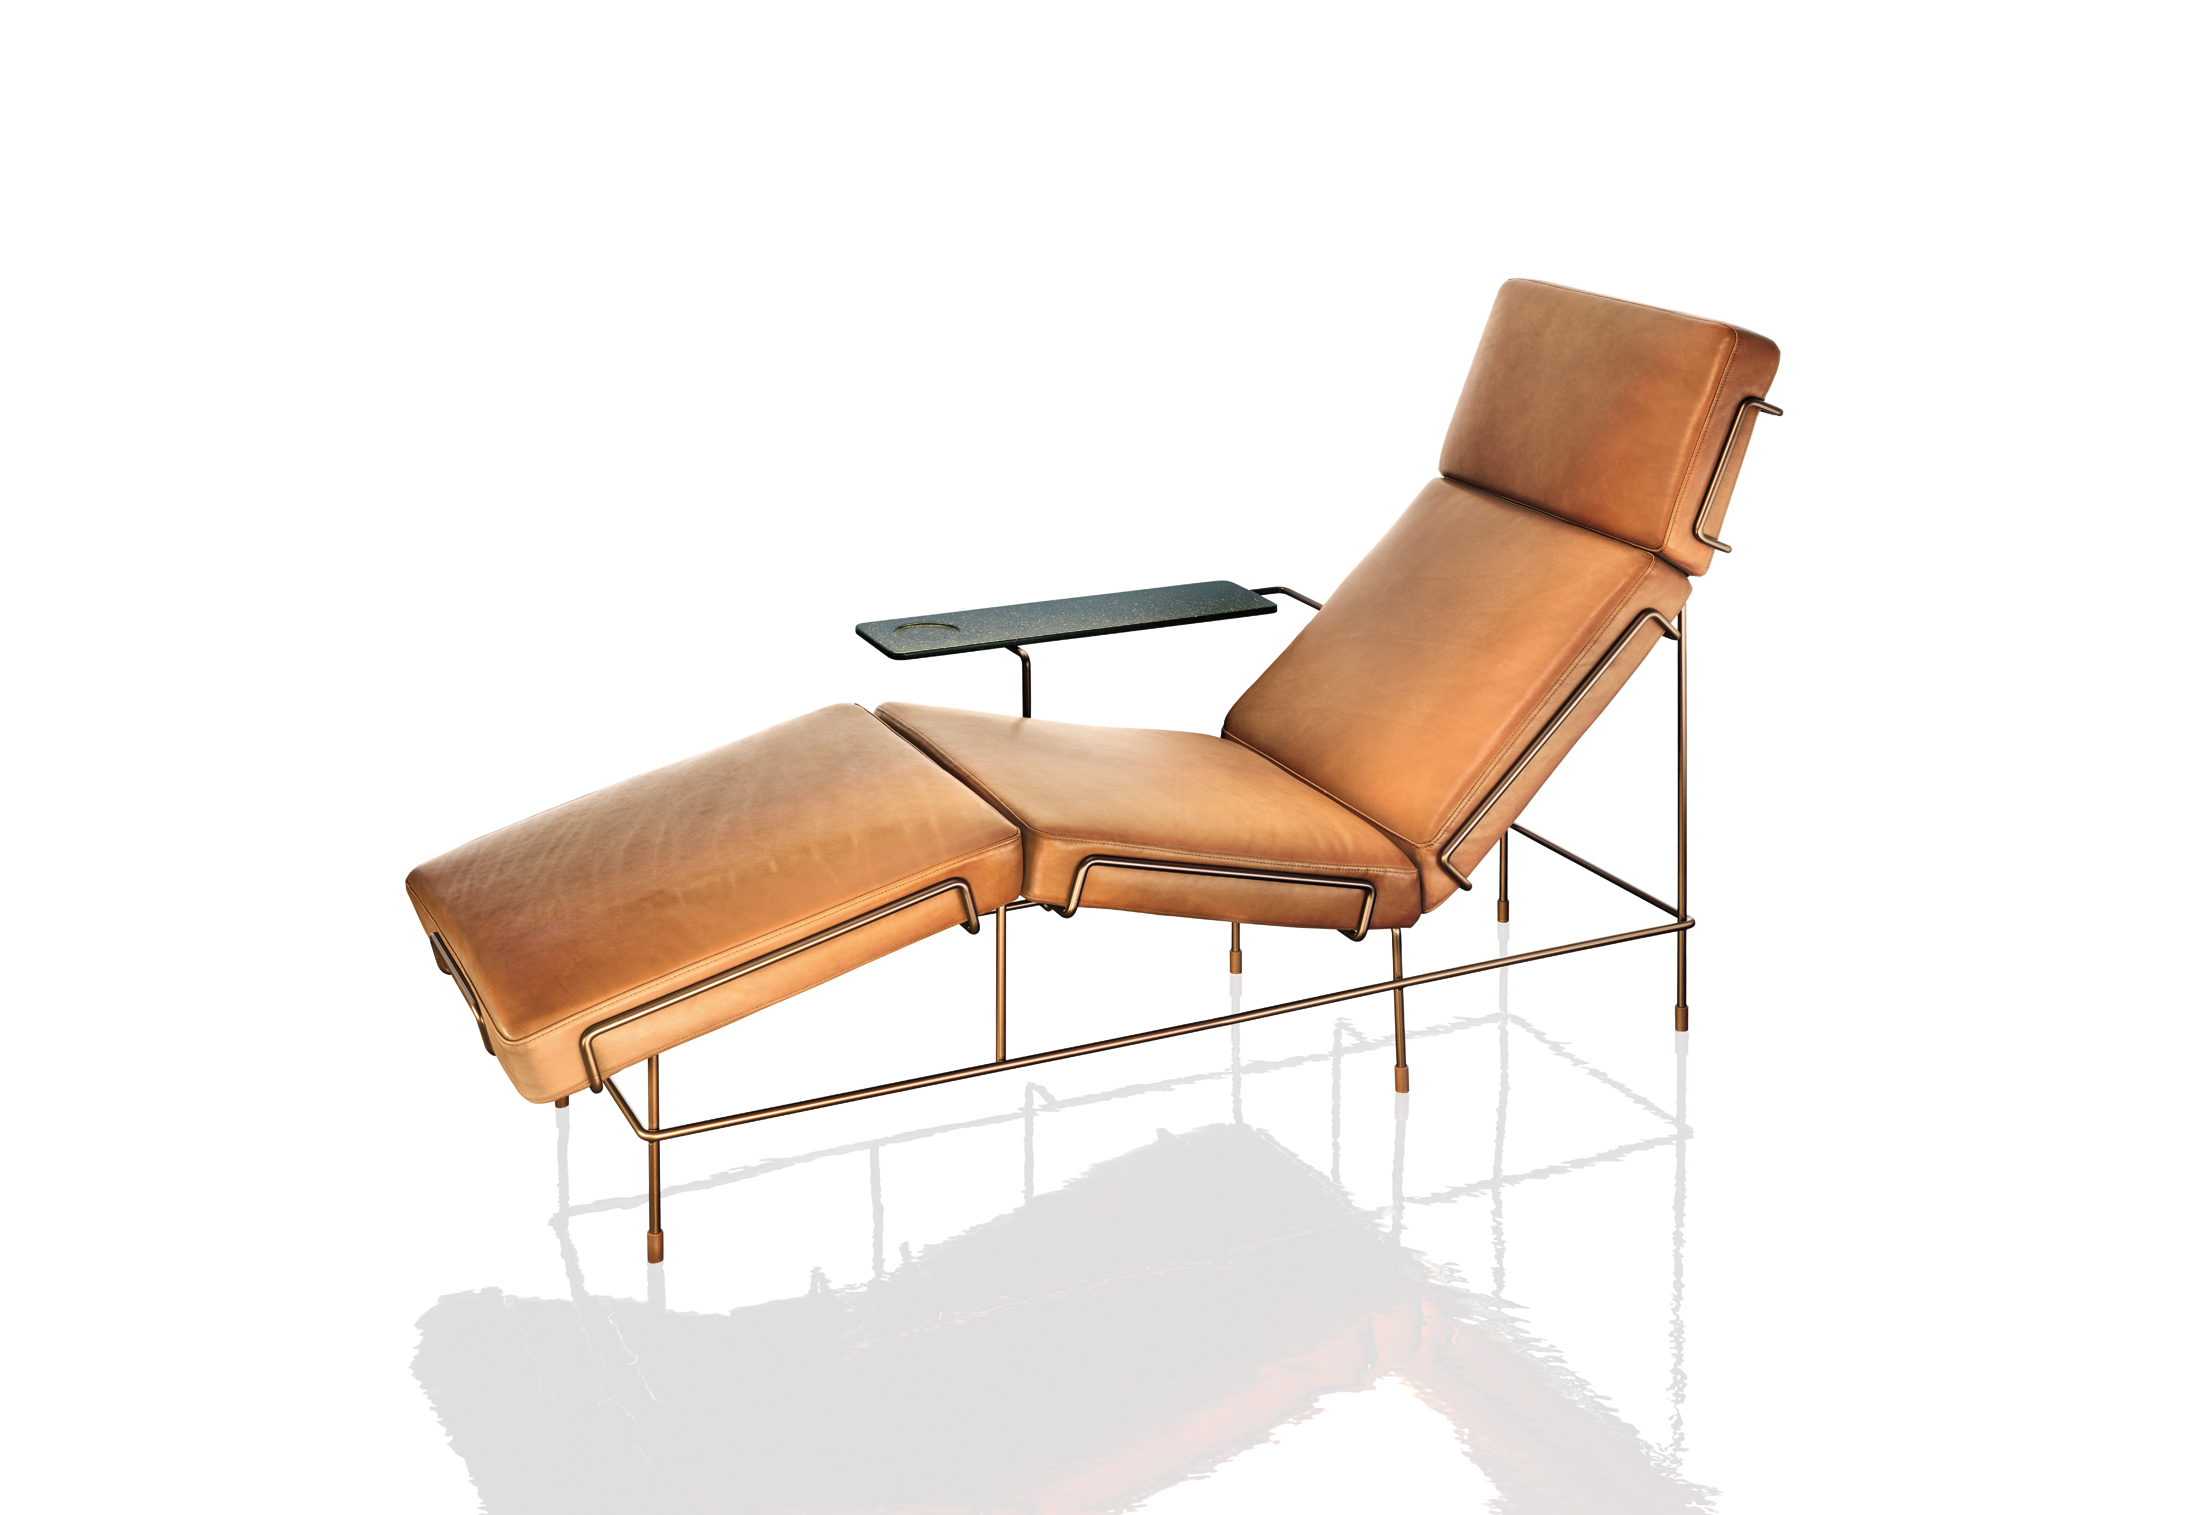 Traffic chaise longue by magis stylepark for Chaise longue interiores